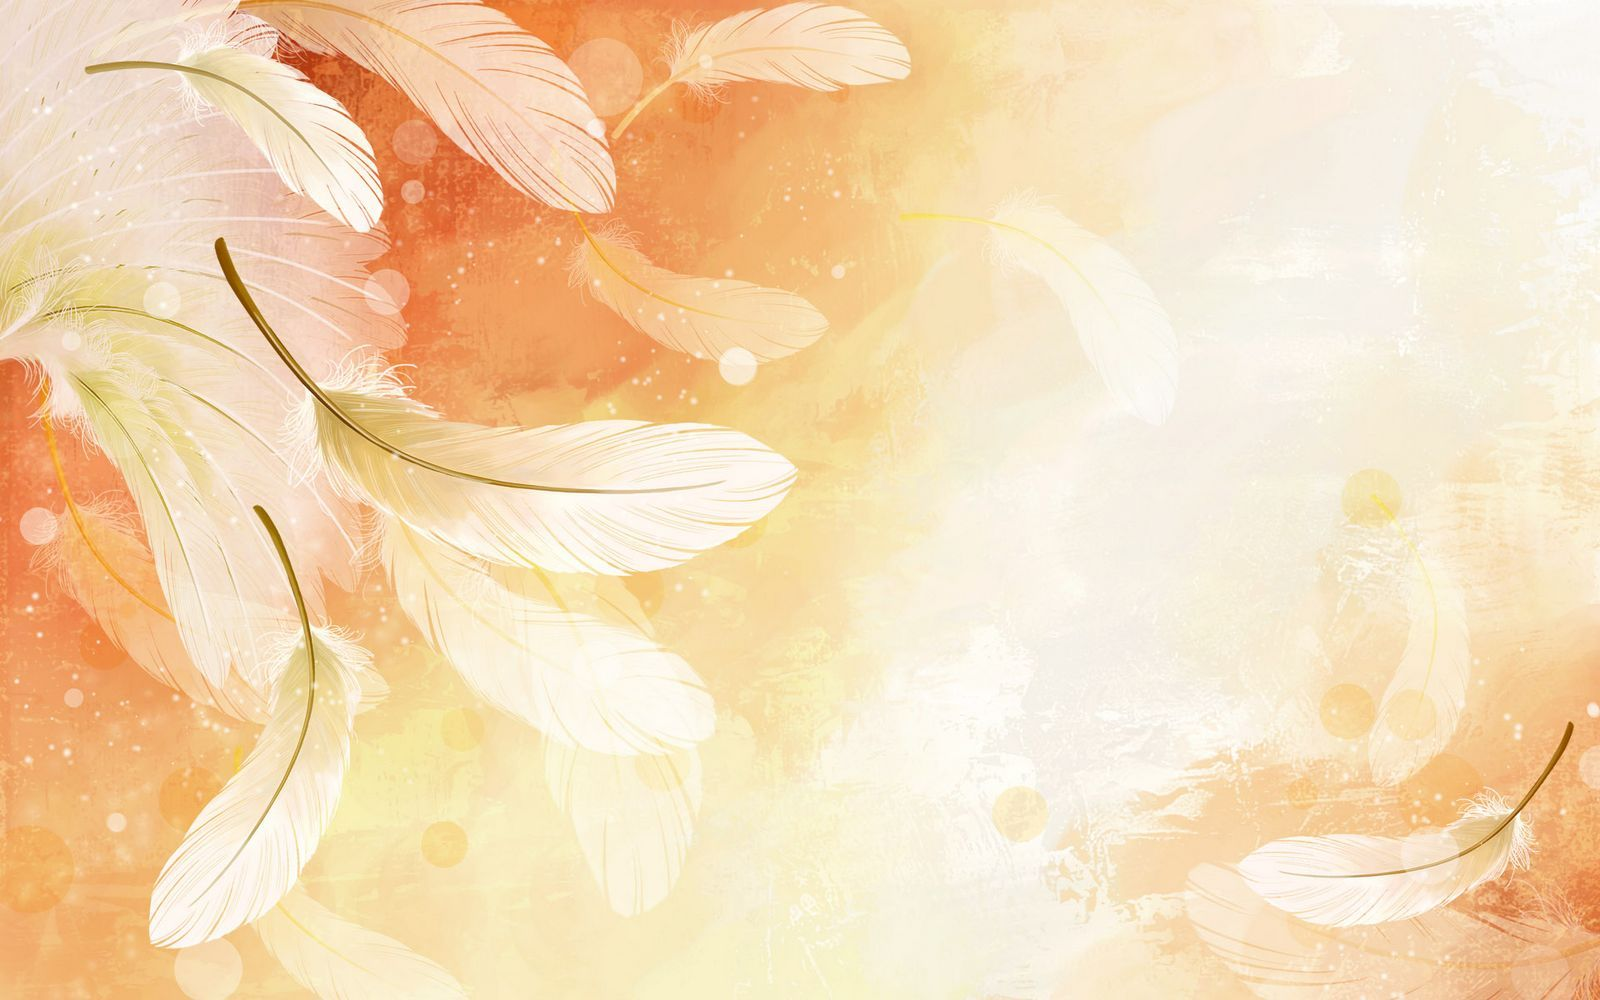 Download Wallpapers Of Nature With Quotes Beautifully Illustrated Vector Flower Backgrounds